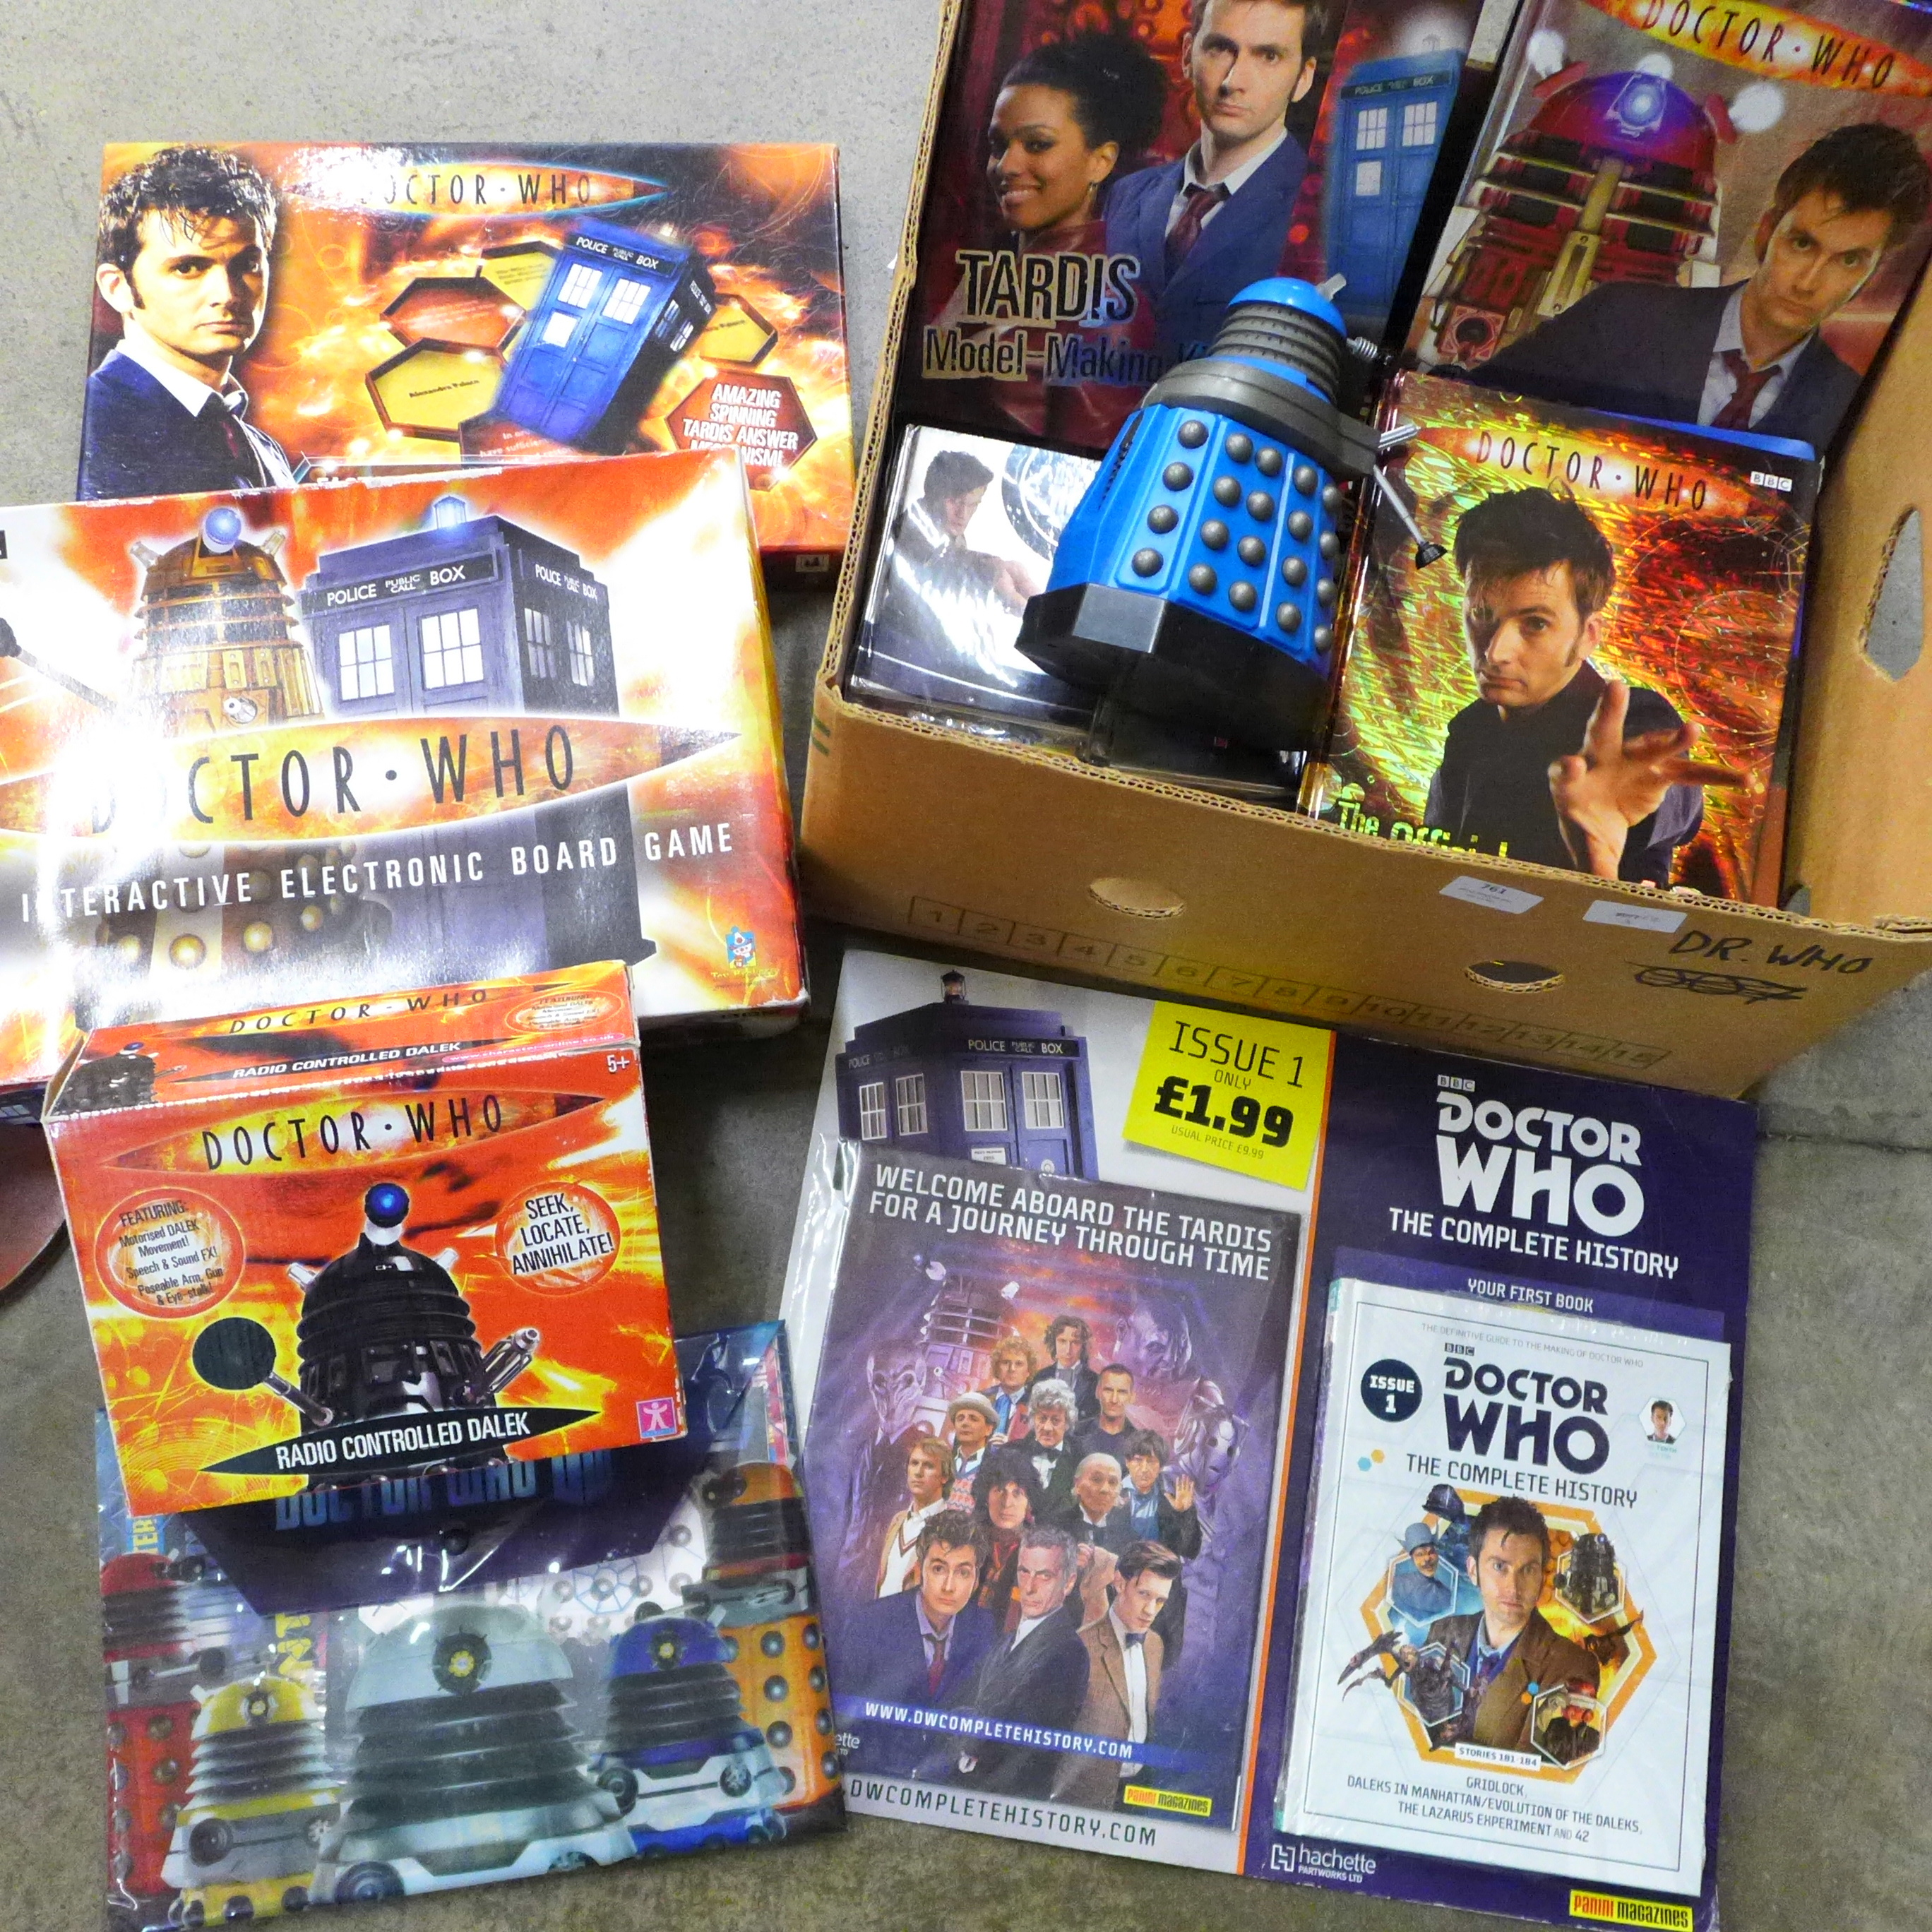 A collection of vintage Doctor Who merchandise and games, including a radio controlled Dalek